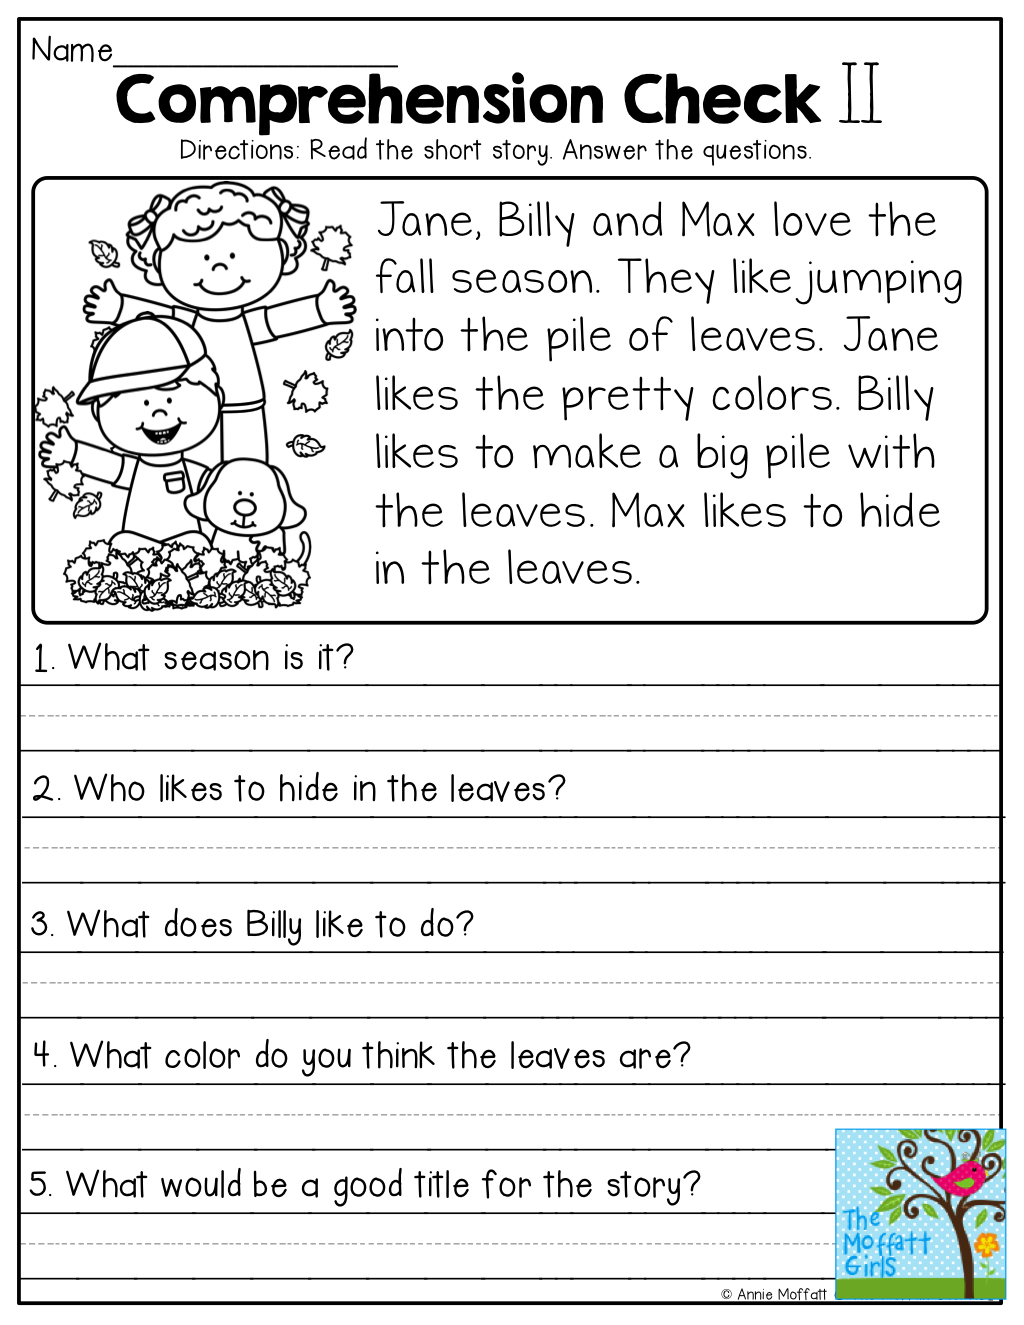 Comprehension Checks And So Many More Useful Printables - Free Printable Short Stories For 2Nd Graders